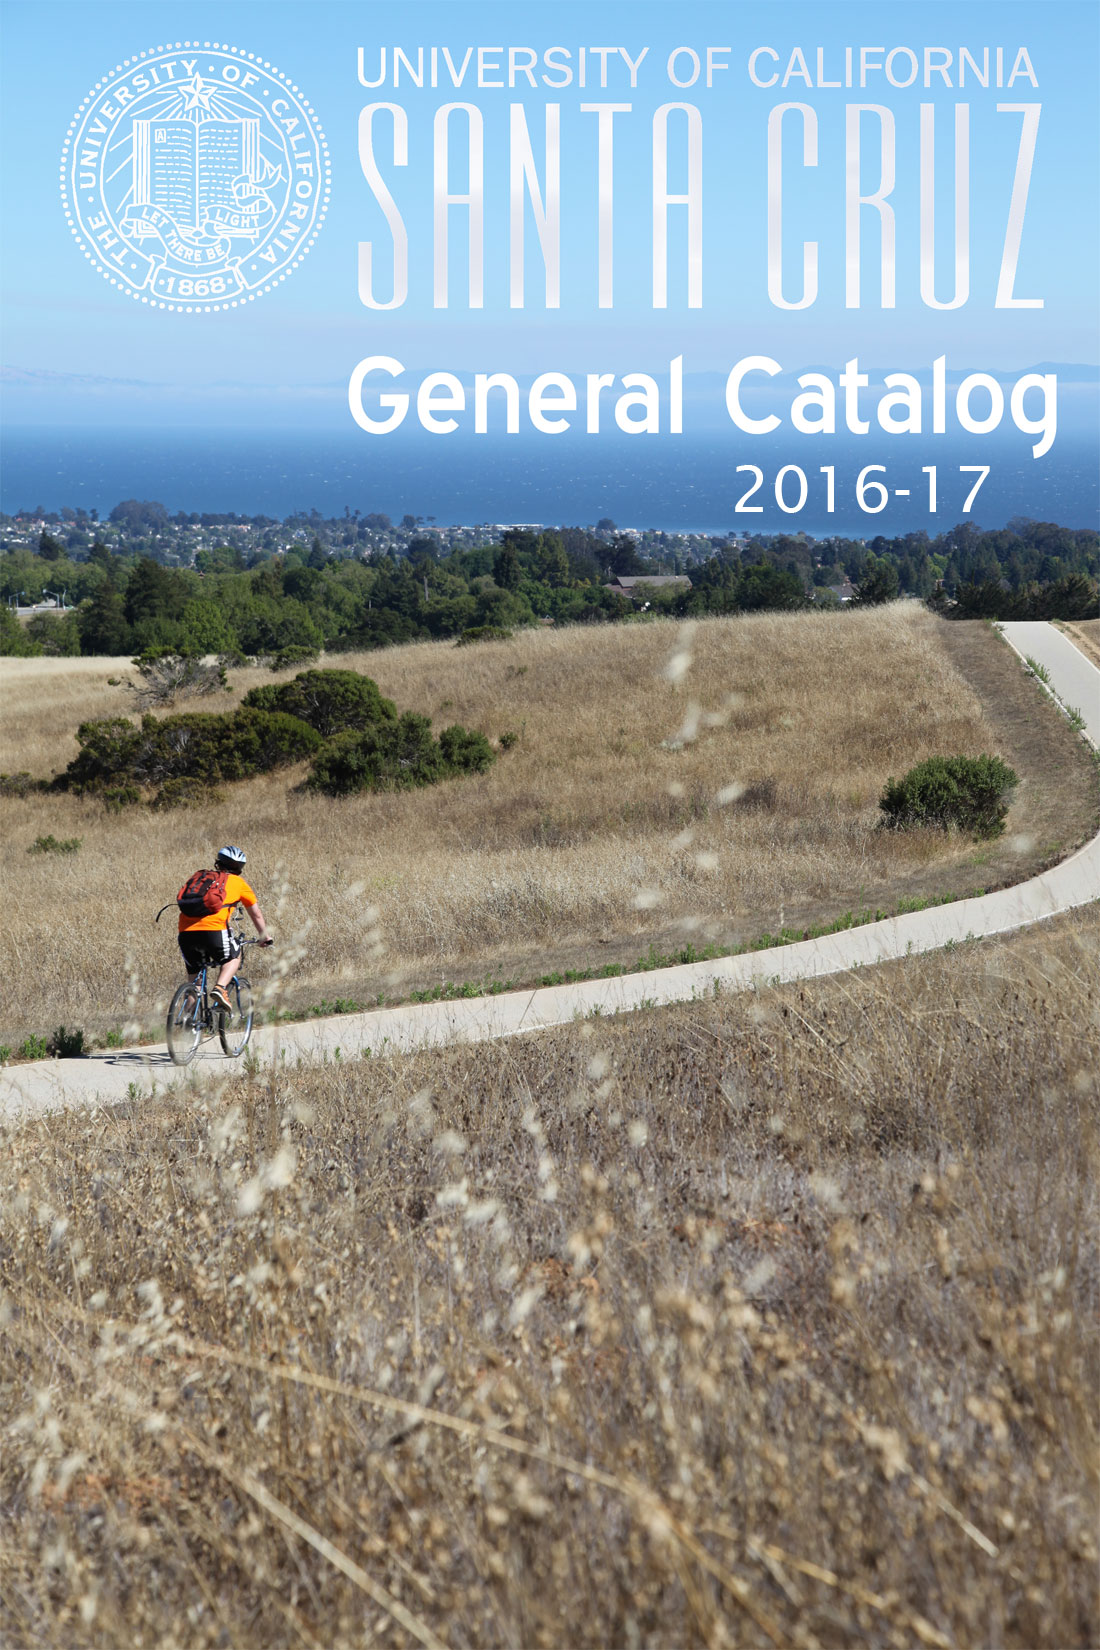 catalog-cover-pic.jpg